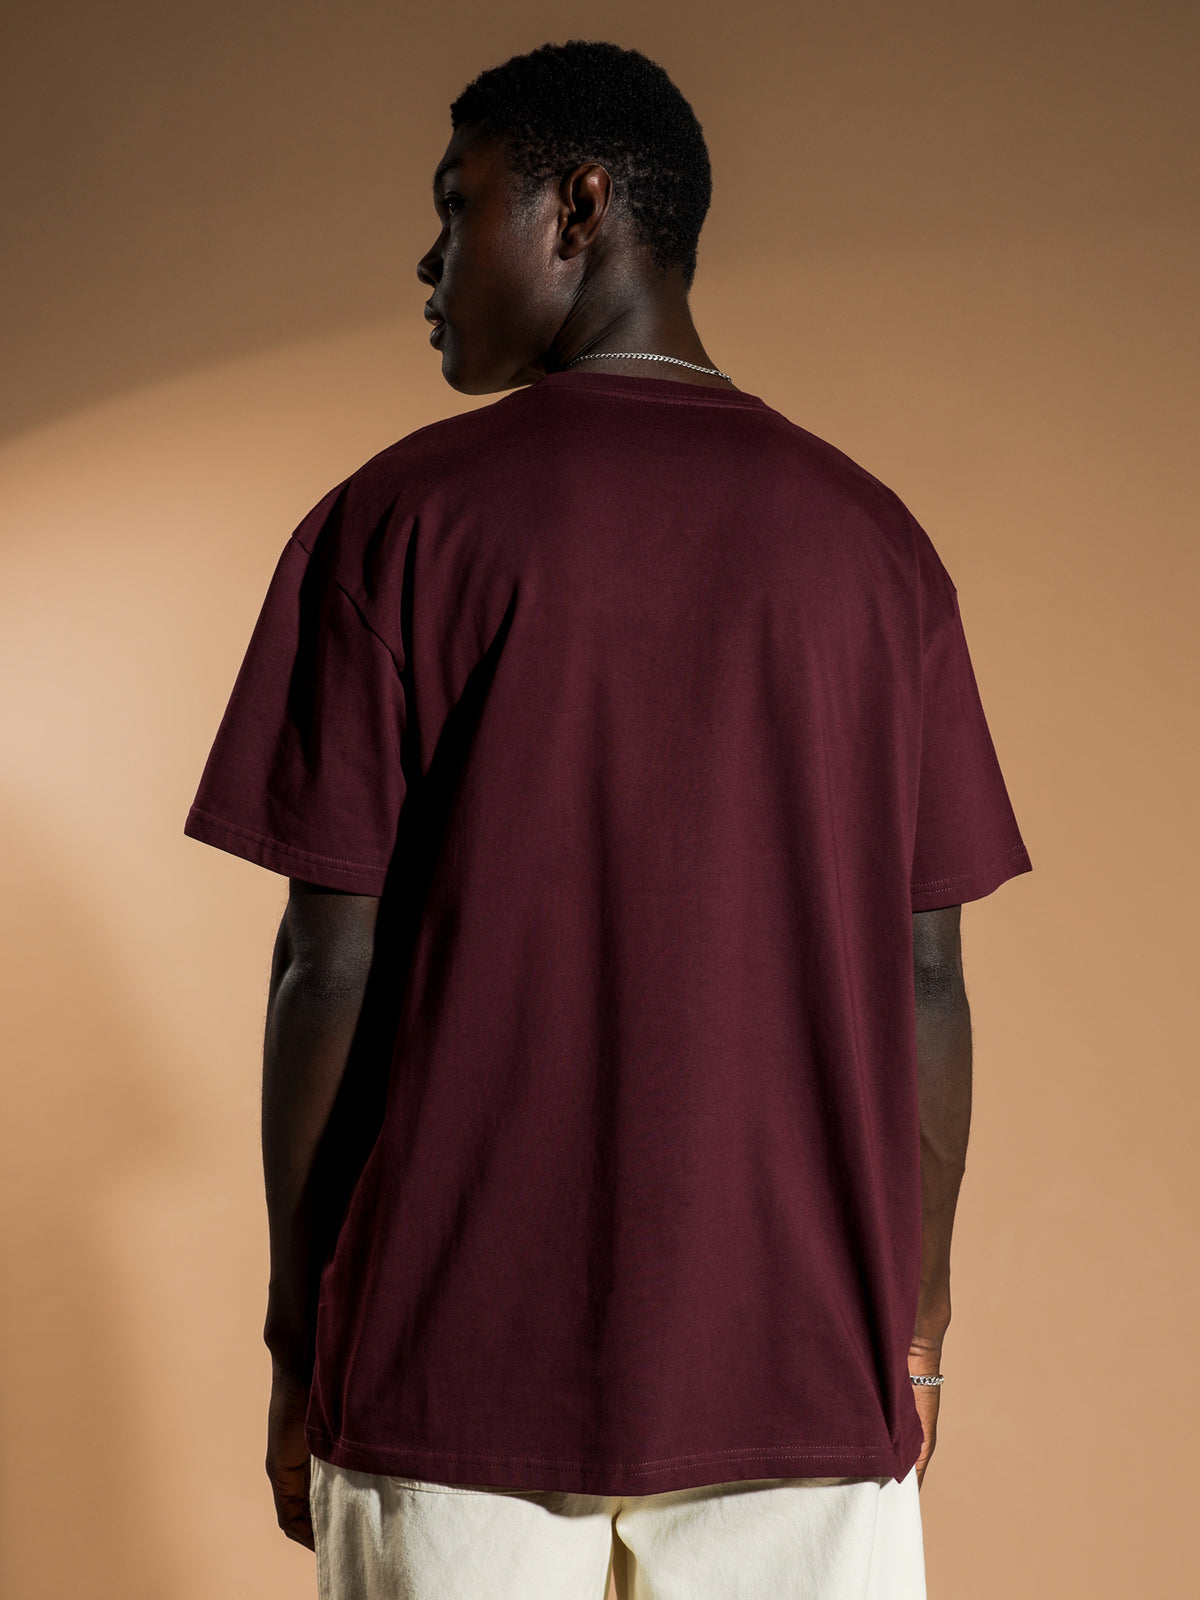 Chase T-Shirt in Burgandy